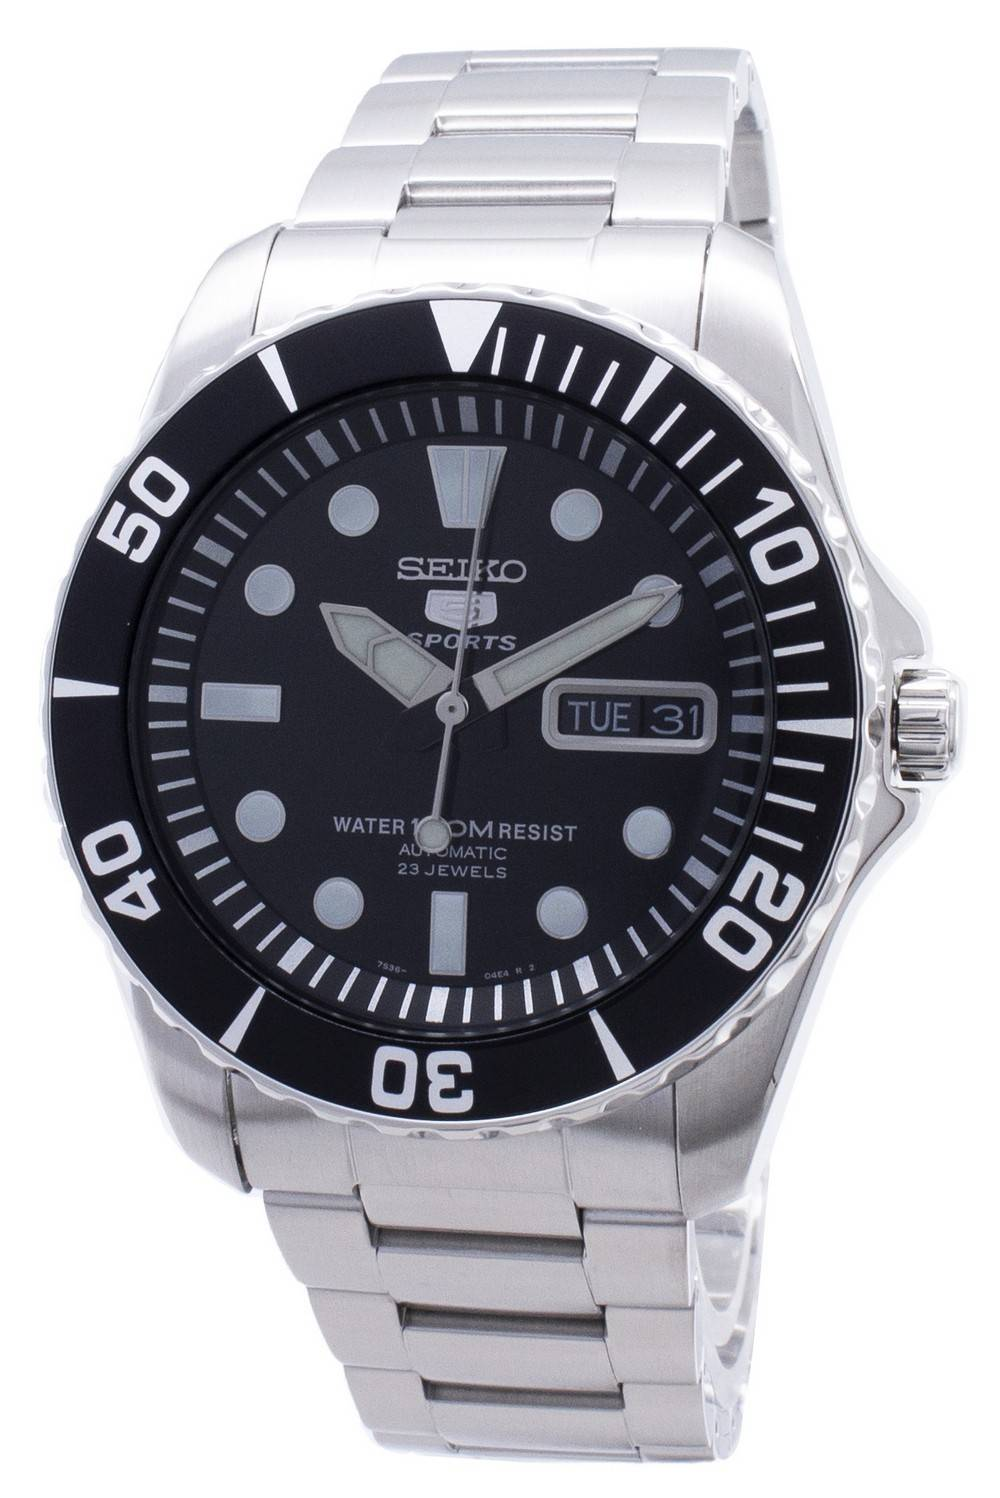 us men seiko about watches watch itm creation jewels mens ebay automatic divers s creationwatches